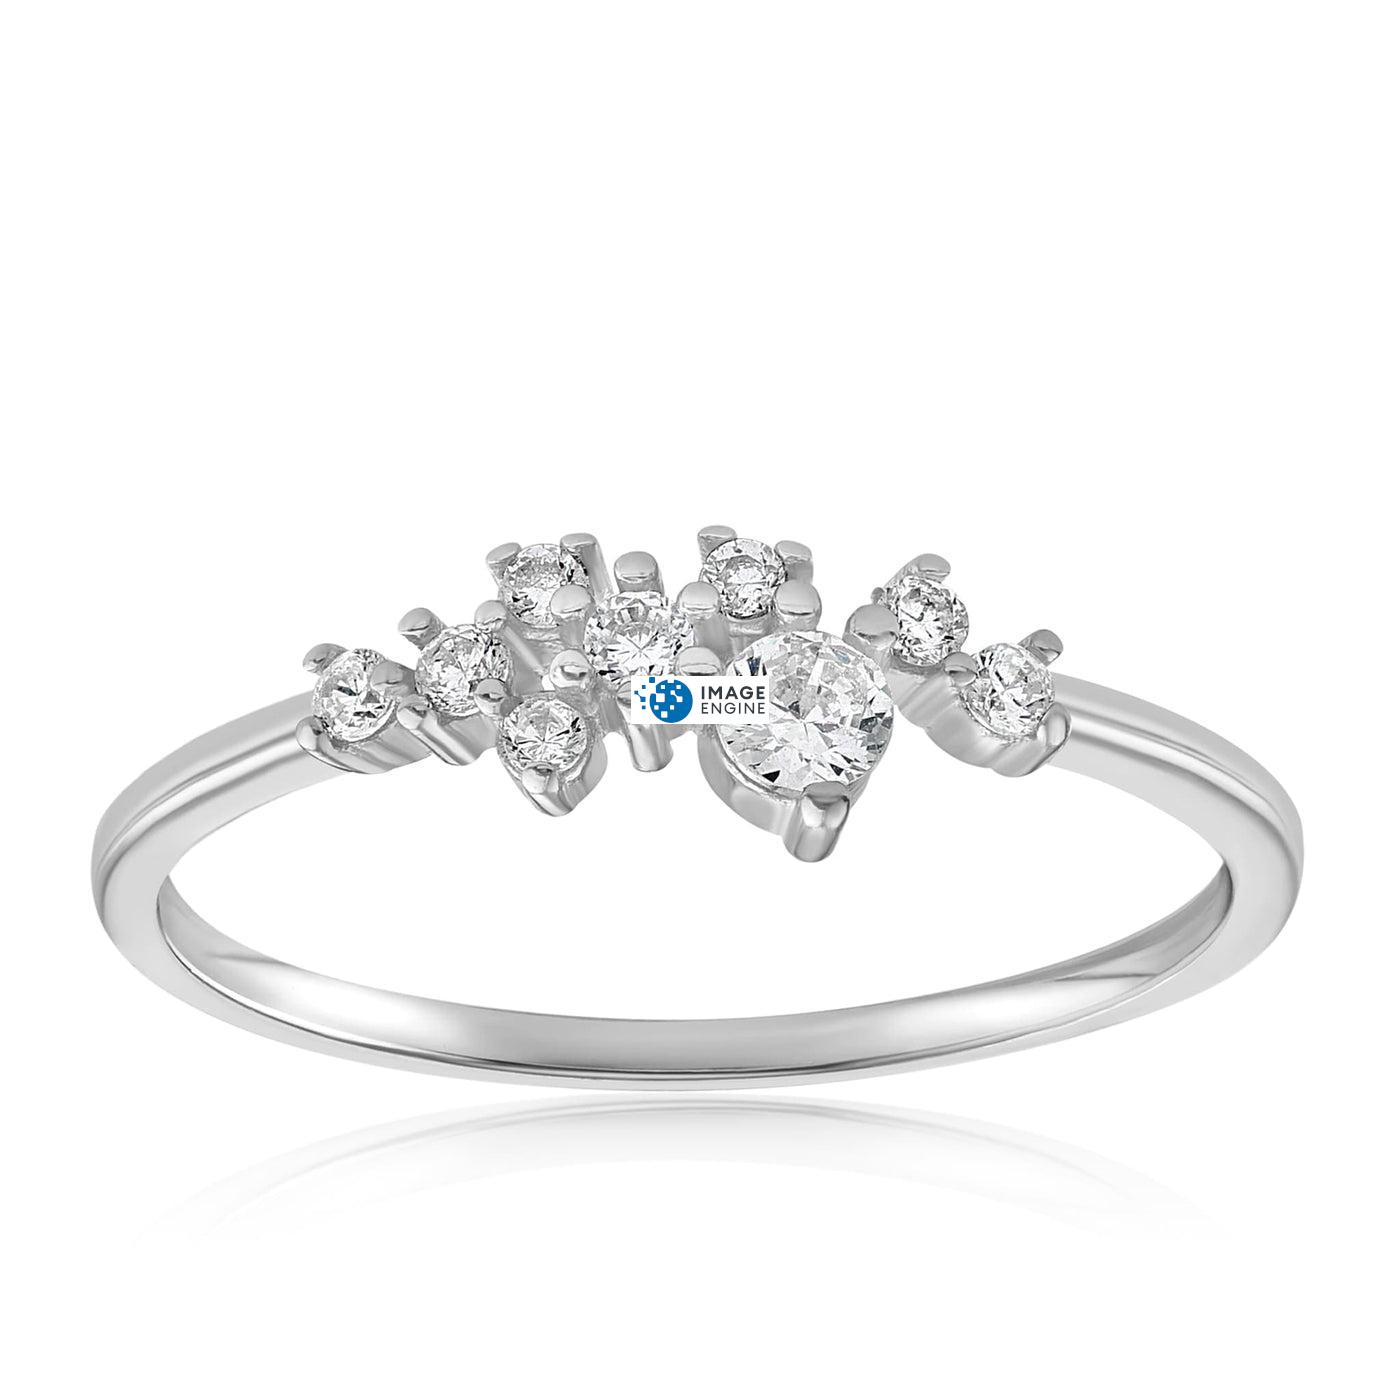 Sasha Sparkle Ring - Front View Facing Up - 925 Sterling Silver